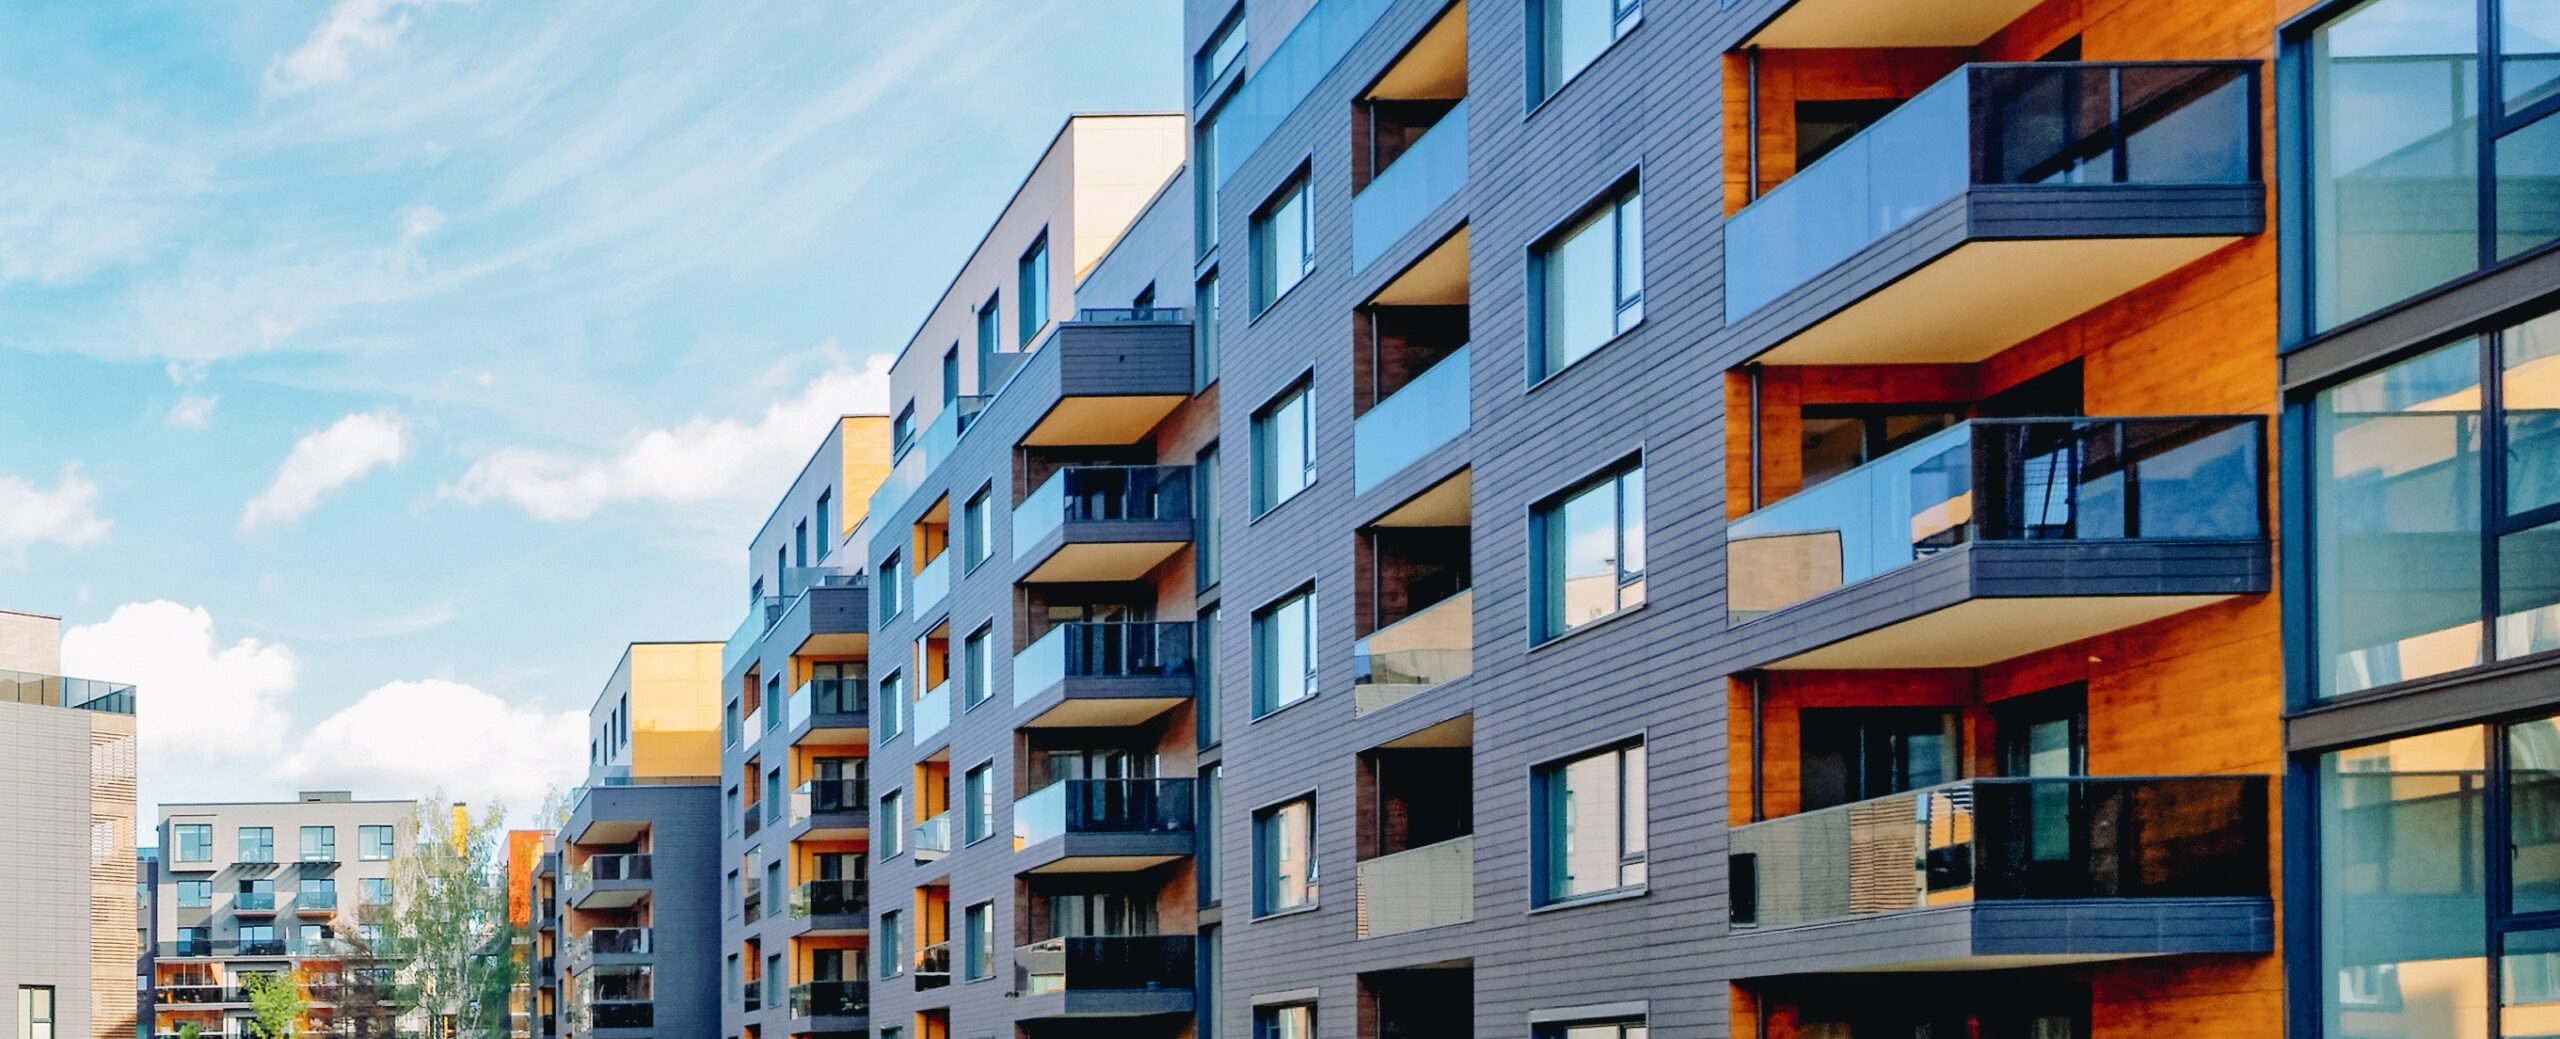 REASONS TO INVEST IN ORANGE COUNTY MULTIFAMILY TODAY